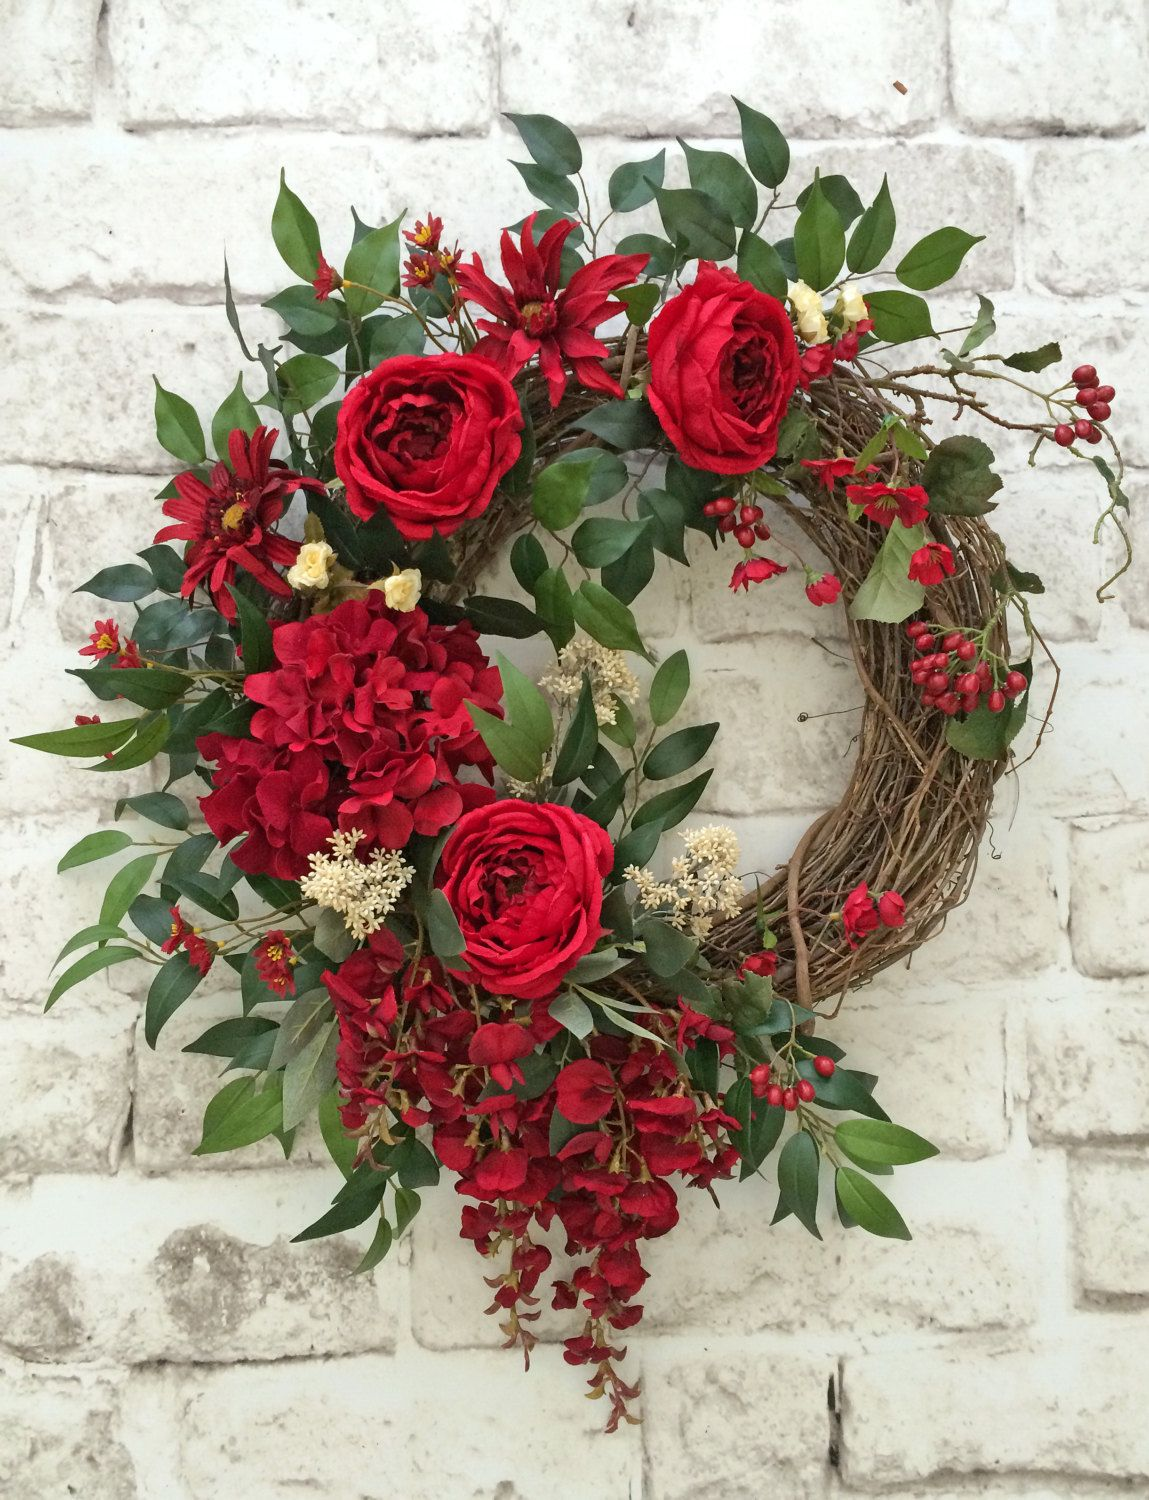 Red Summer Wreath For Door Front Door Wreath By Adorabellawreaths Wreath Decor Christmas Wreaths Christmas Decorations Wreaths